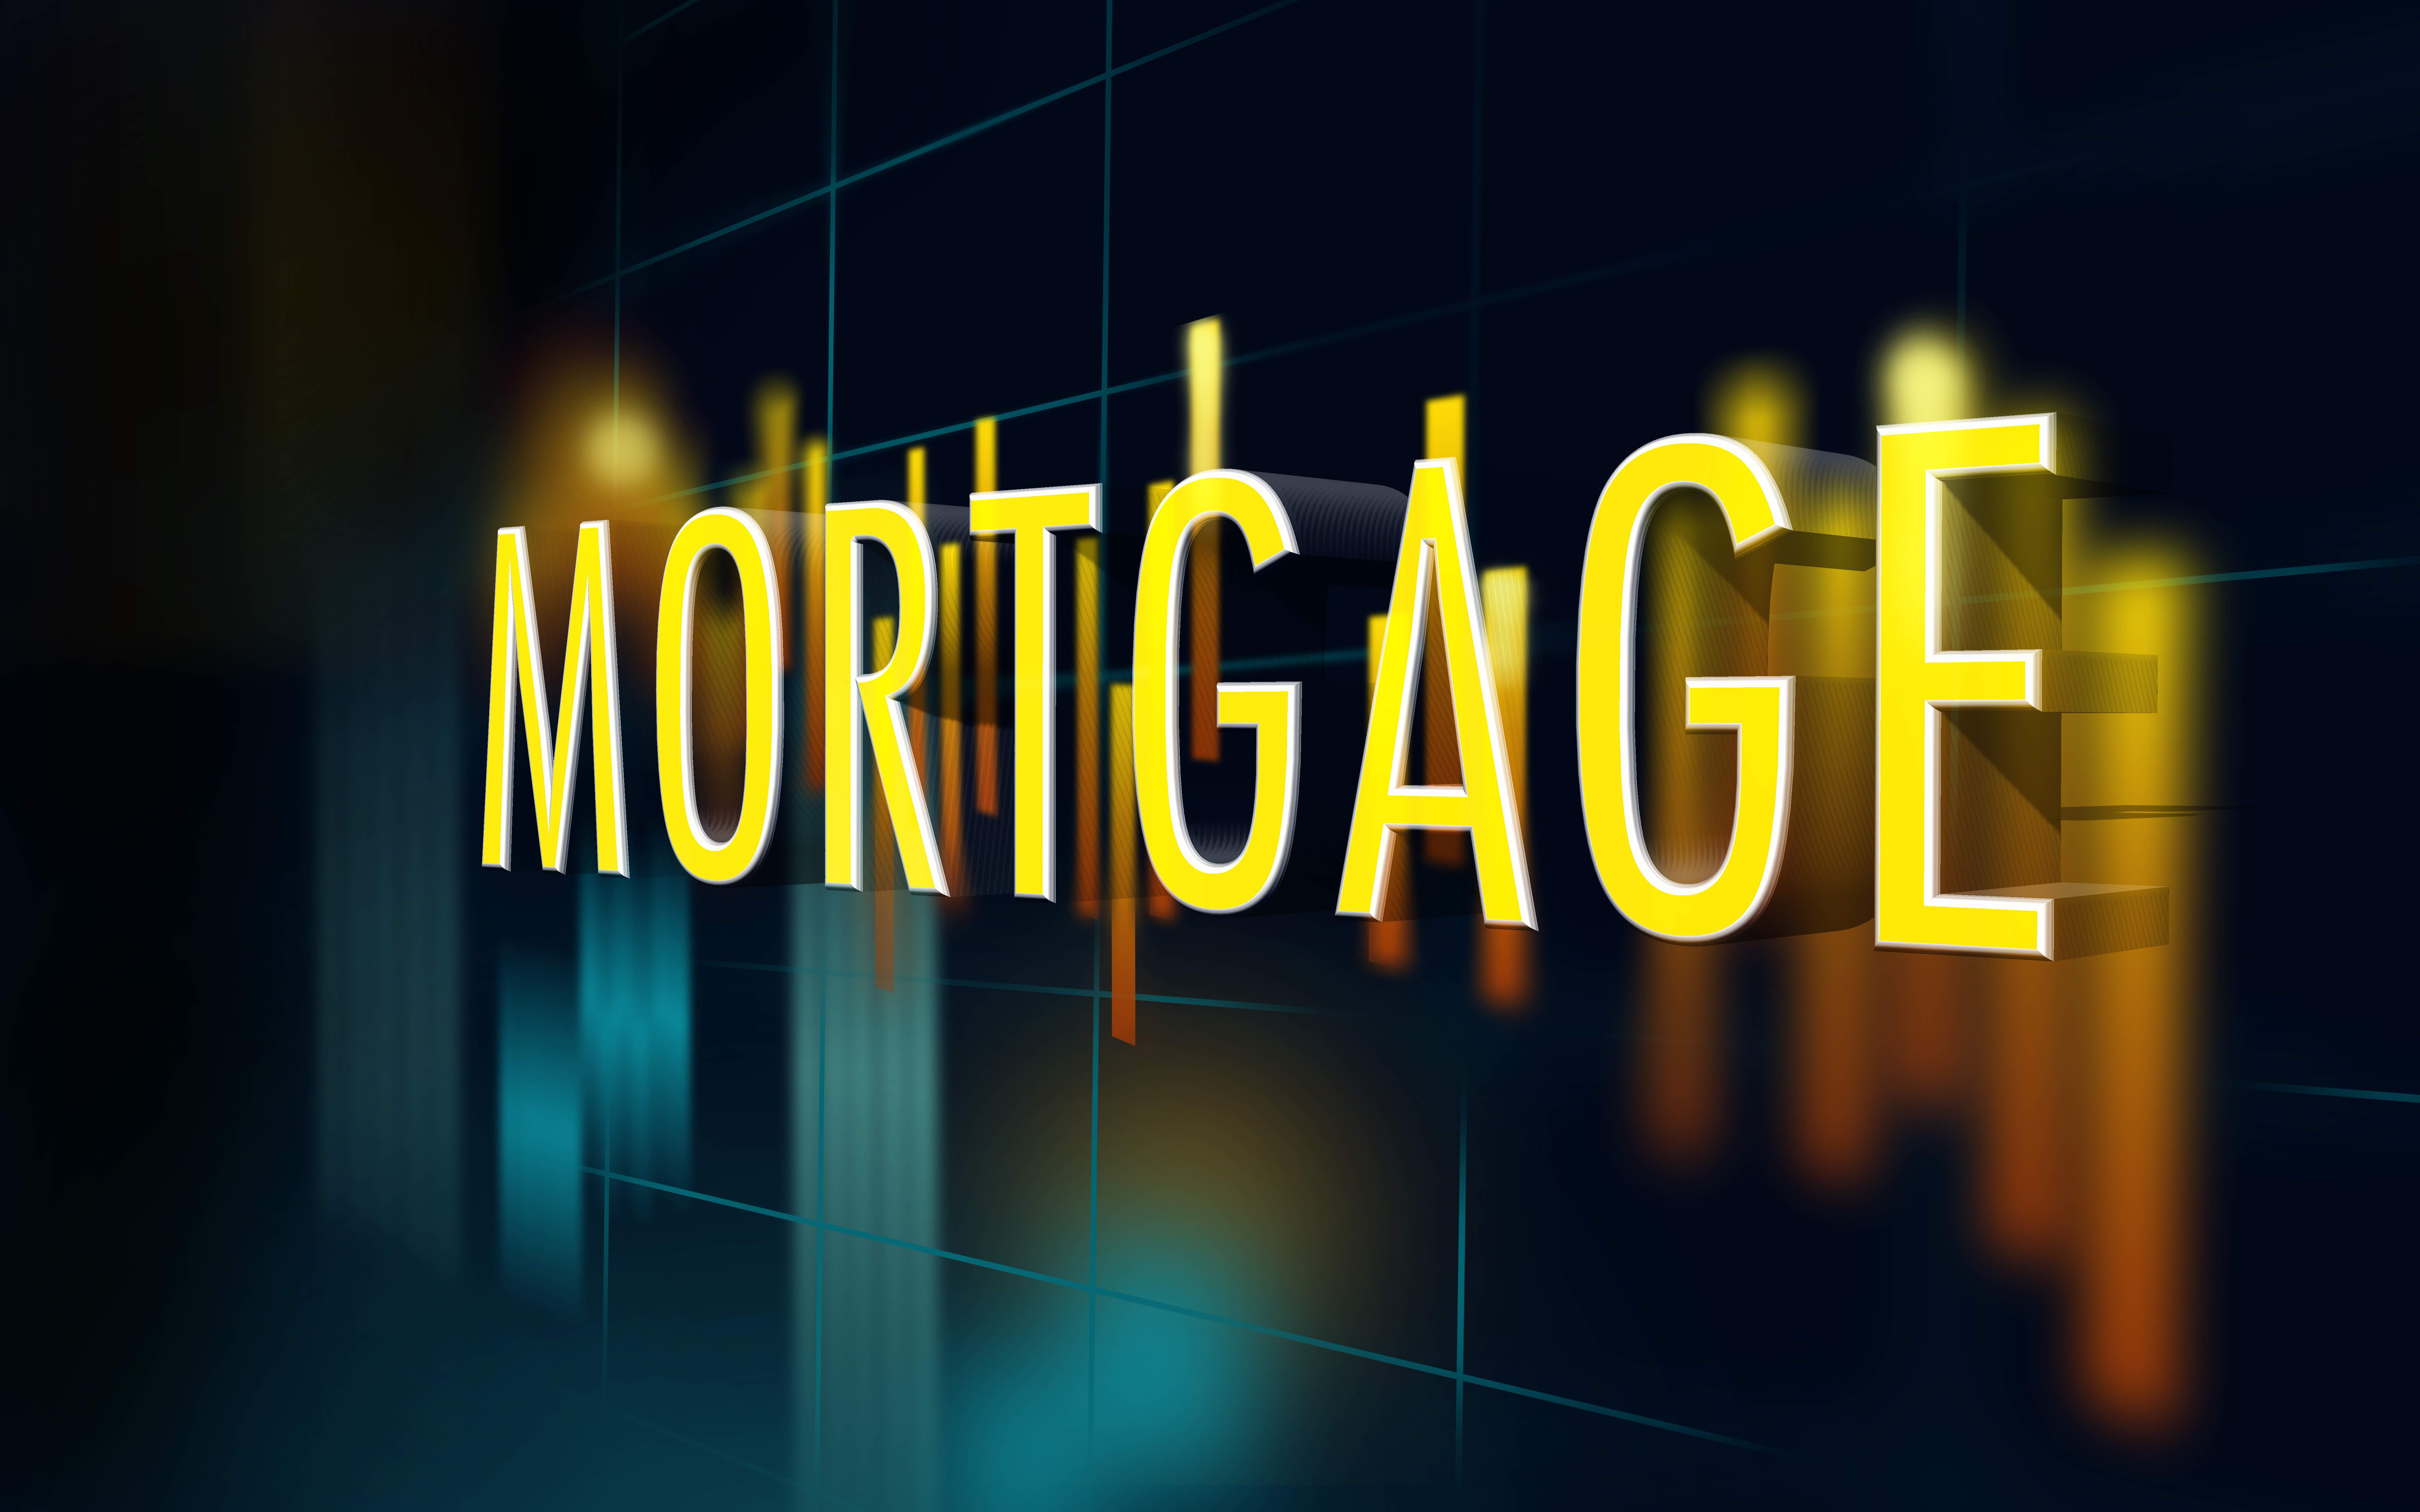 Mortgage Update | Keeping Business Moving Forward